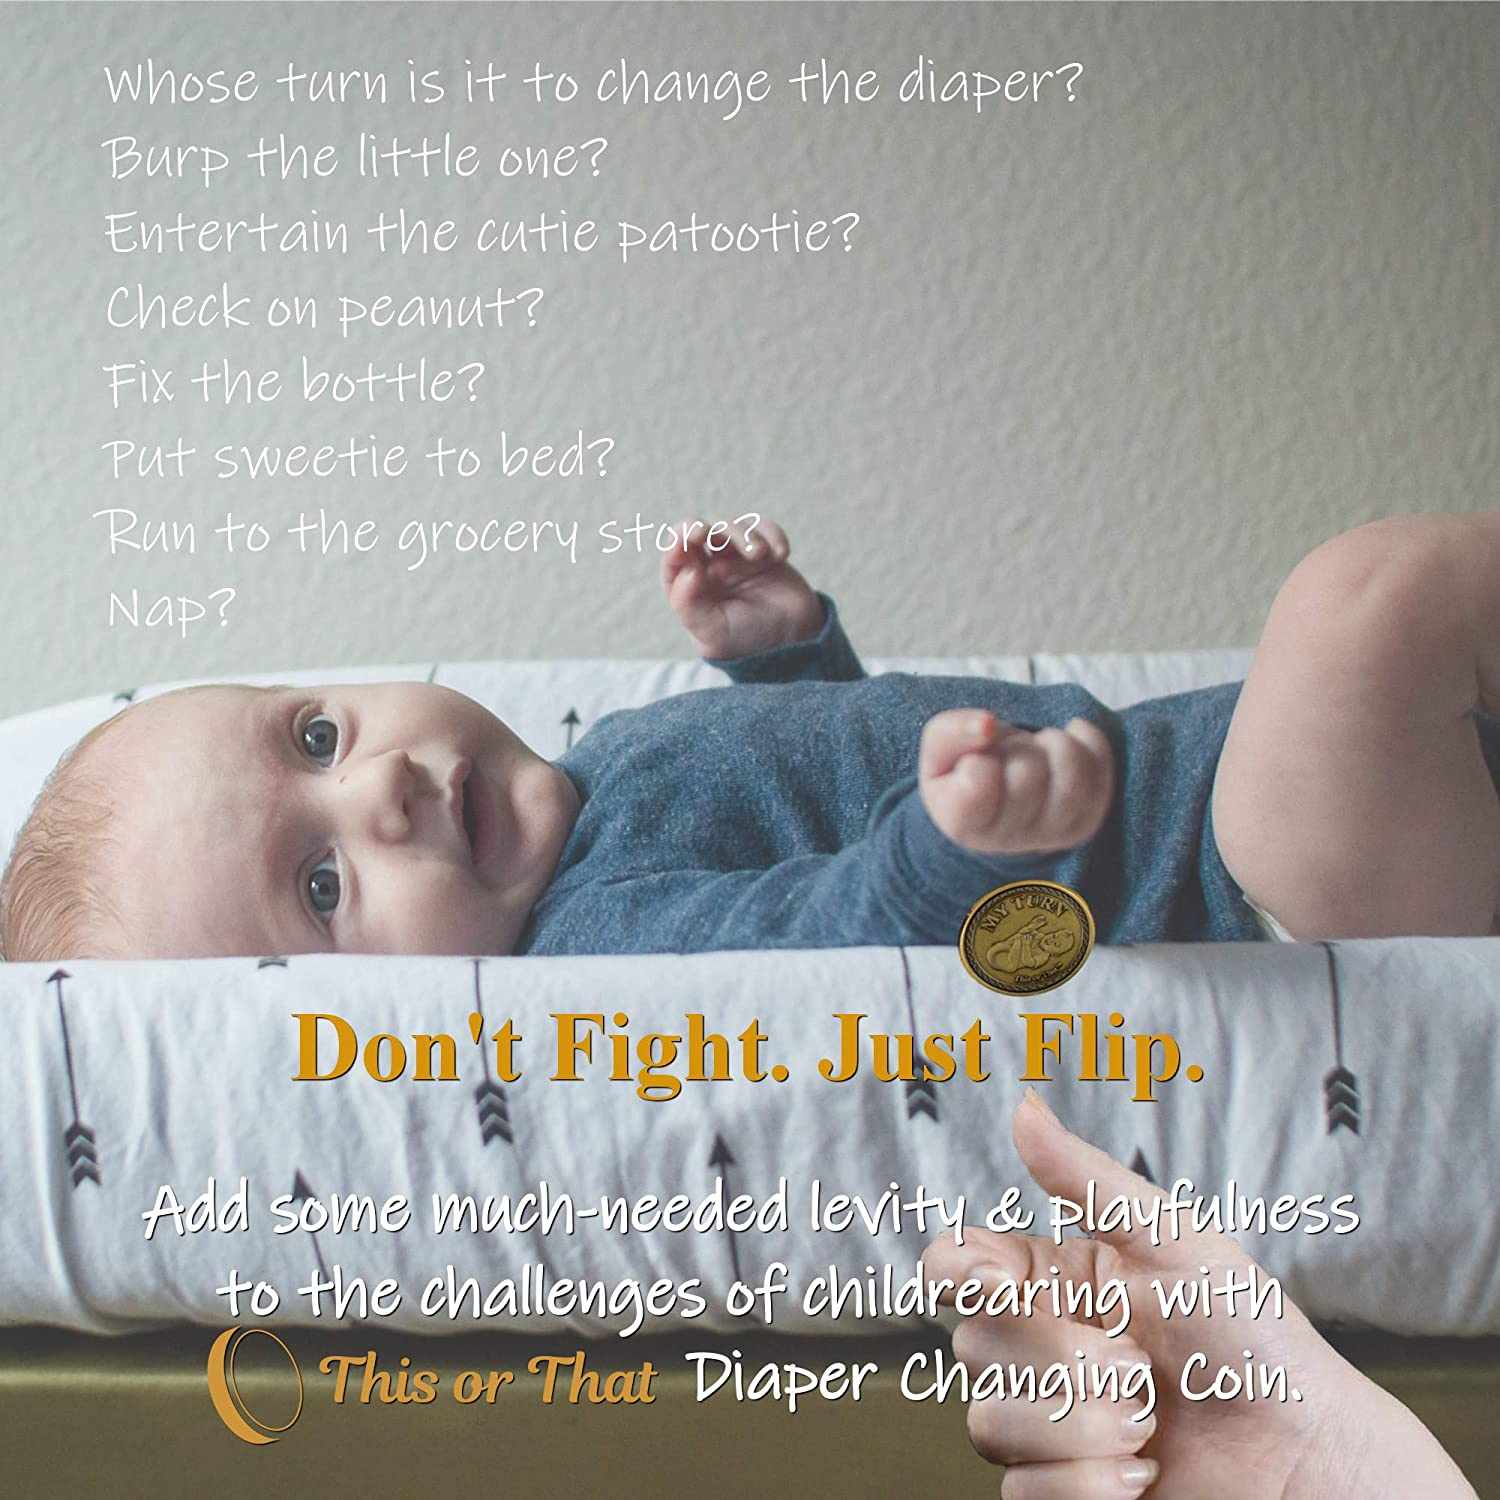 This or That Original Diaper Changing Decision Making Coin   Flip The Coin to See Who Changes Diaper – Unique for Expecting Parents or Fun Way to Celebrate Parenthood